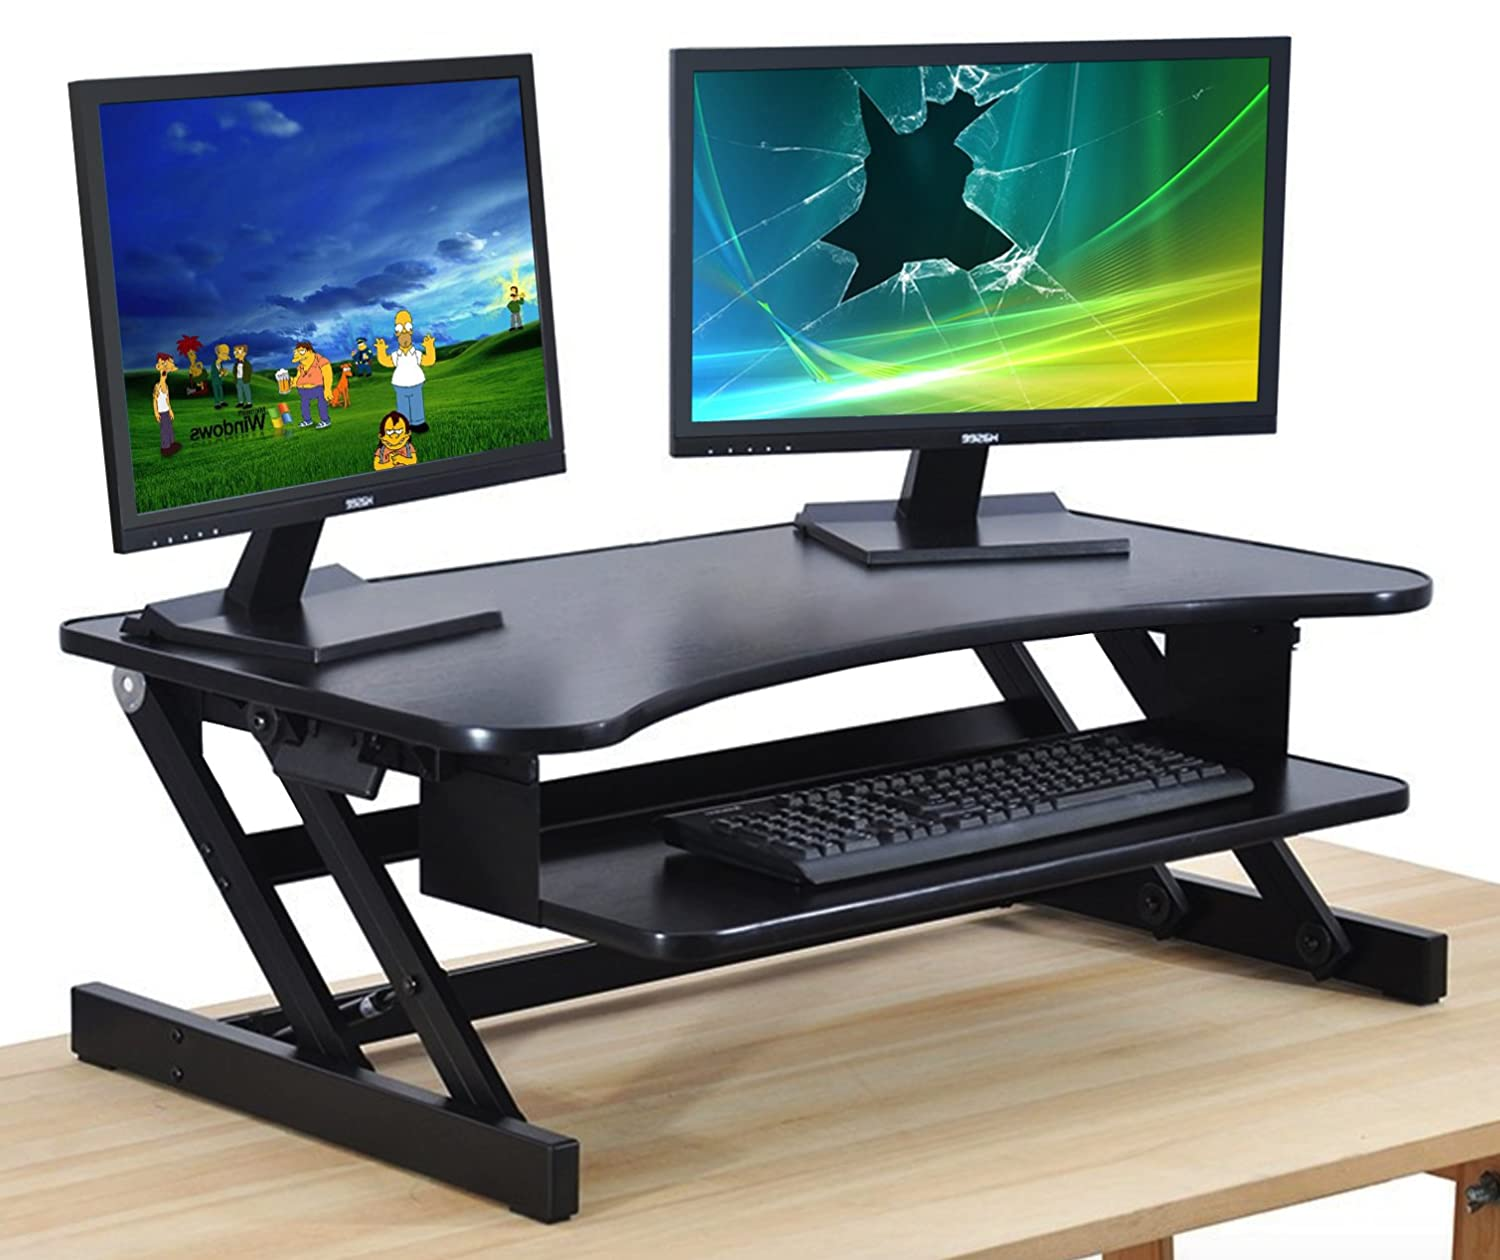 Amazon.com : Standing Desk Adjustable Height Stand Up Desk   Sturdy 32in.  Wide Sit Stand Desk With Retractable Keyboard Tray   Fits Dual Monitors :  Office ... Part 70